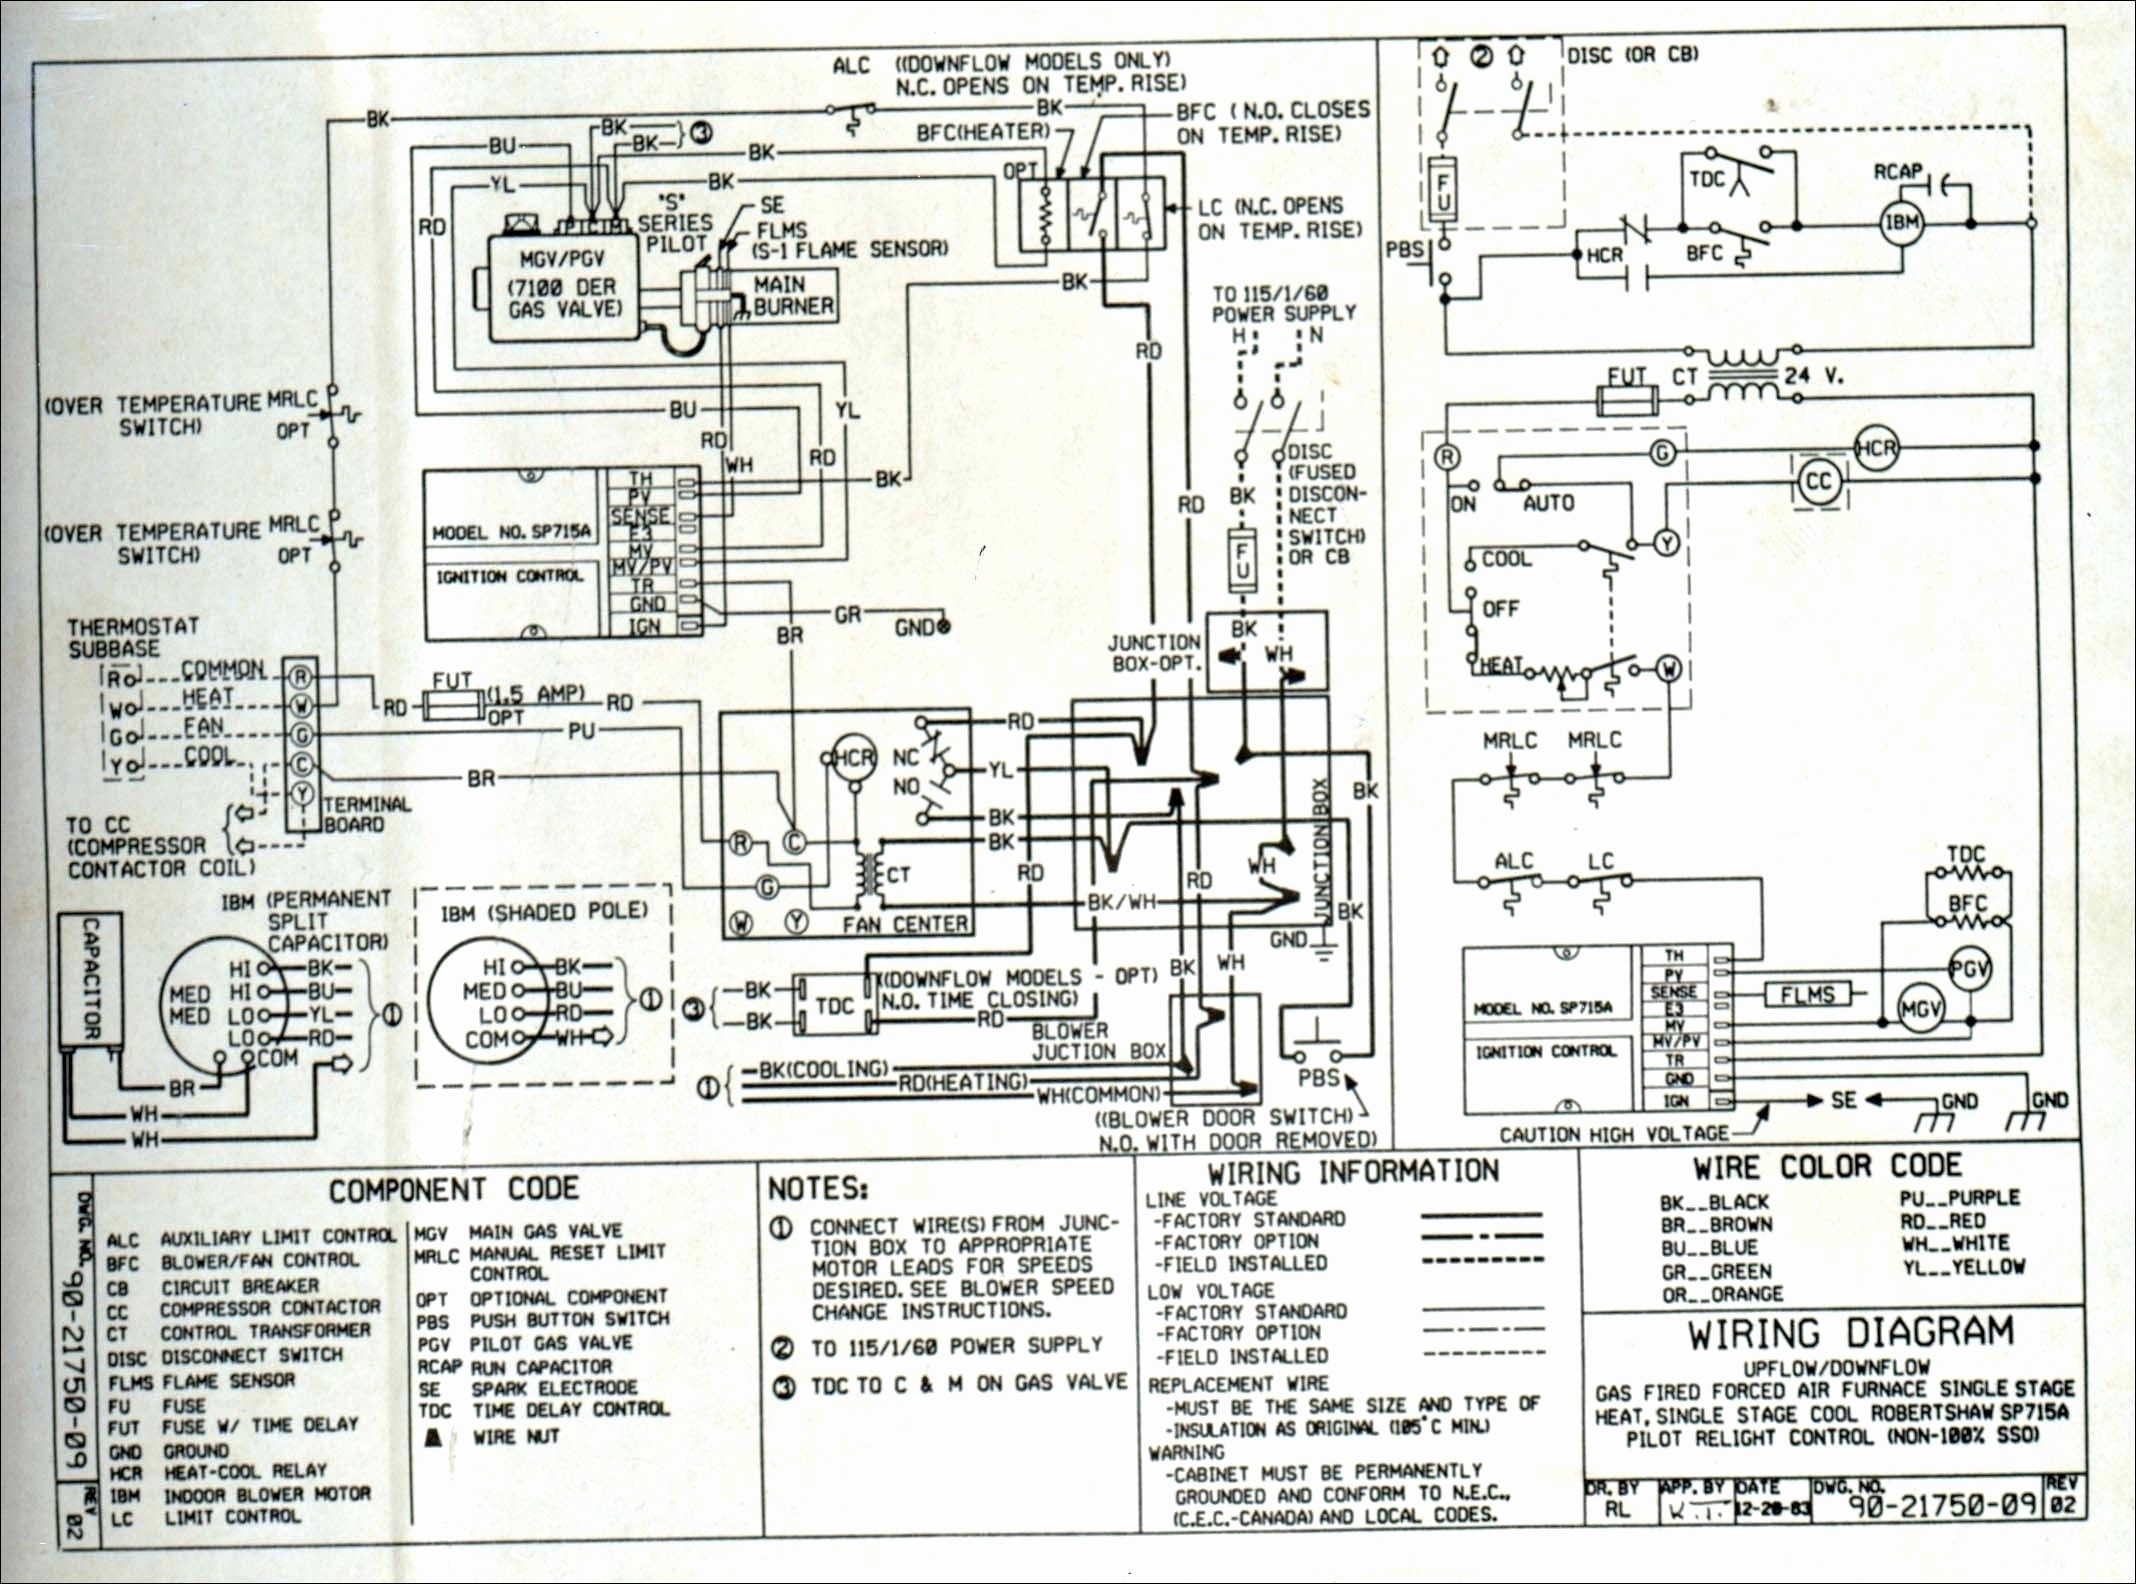 Gas Furnace Parts Diagram Oil Furnace and Heat Pump Wiring Diagram Wiring Diagram Paper Of Gas Furnace Parts Diagram